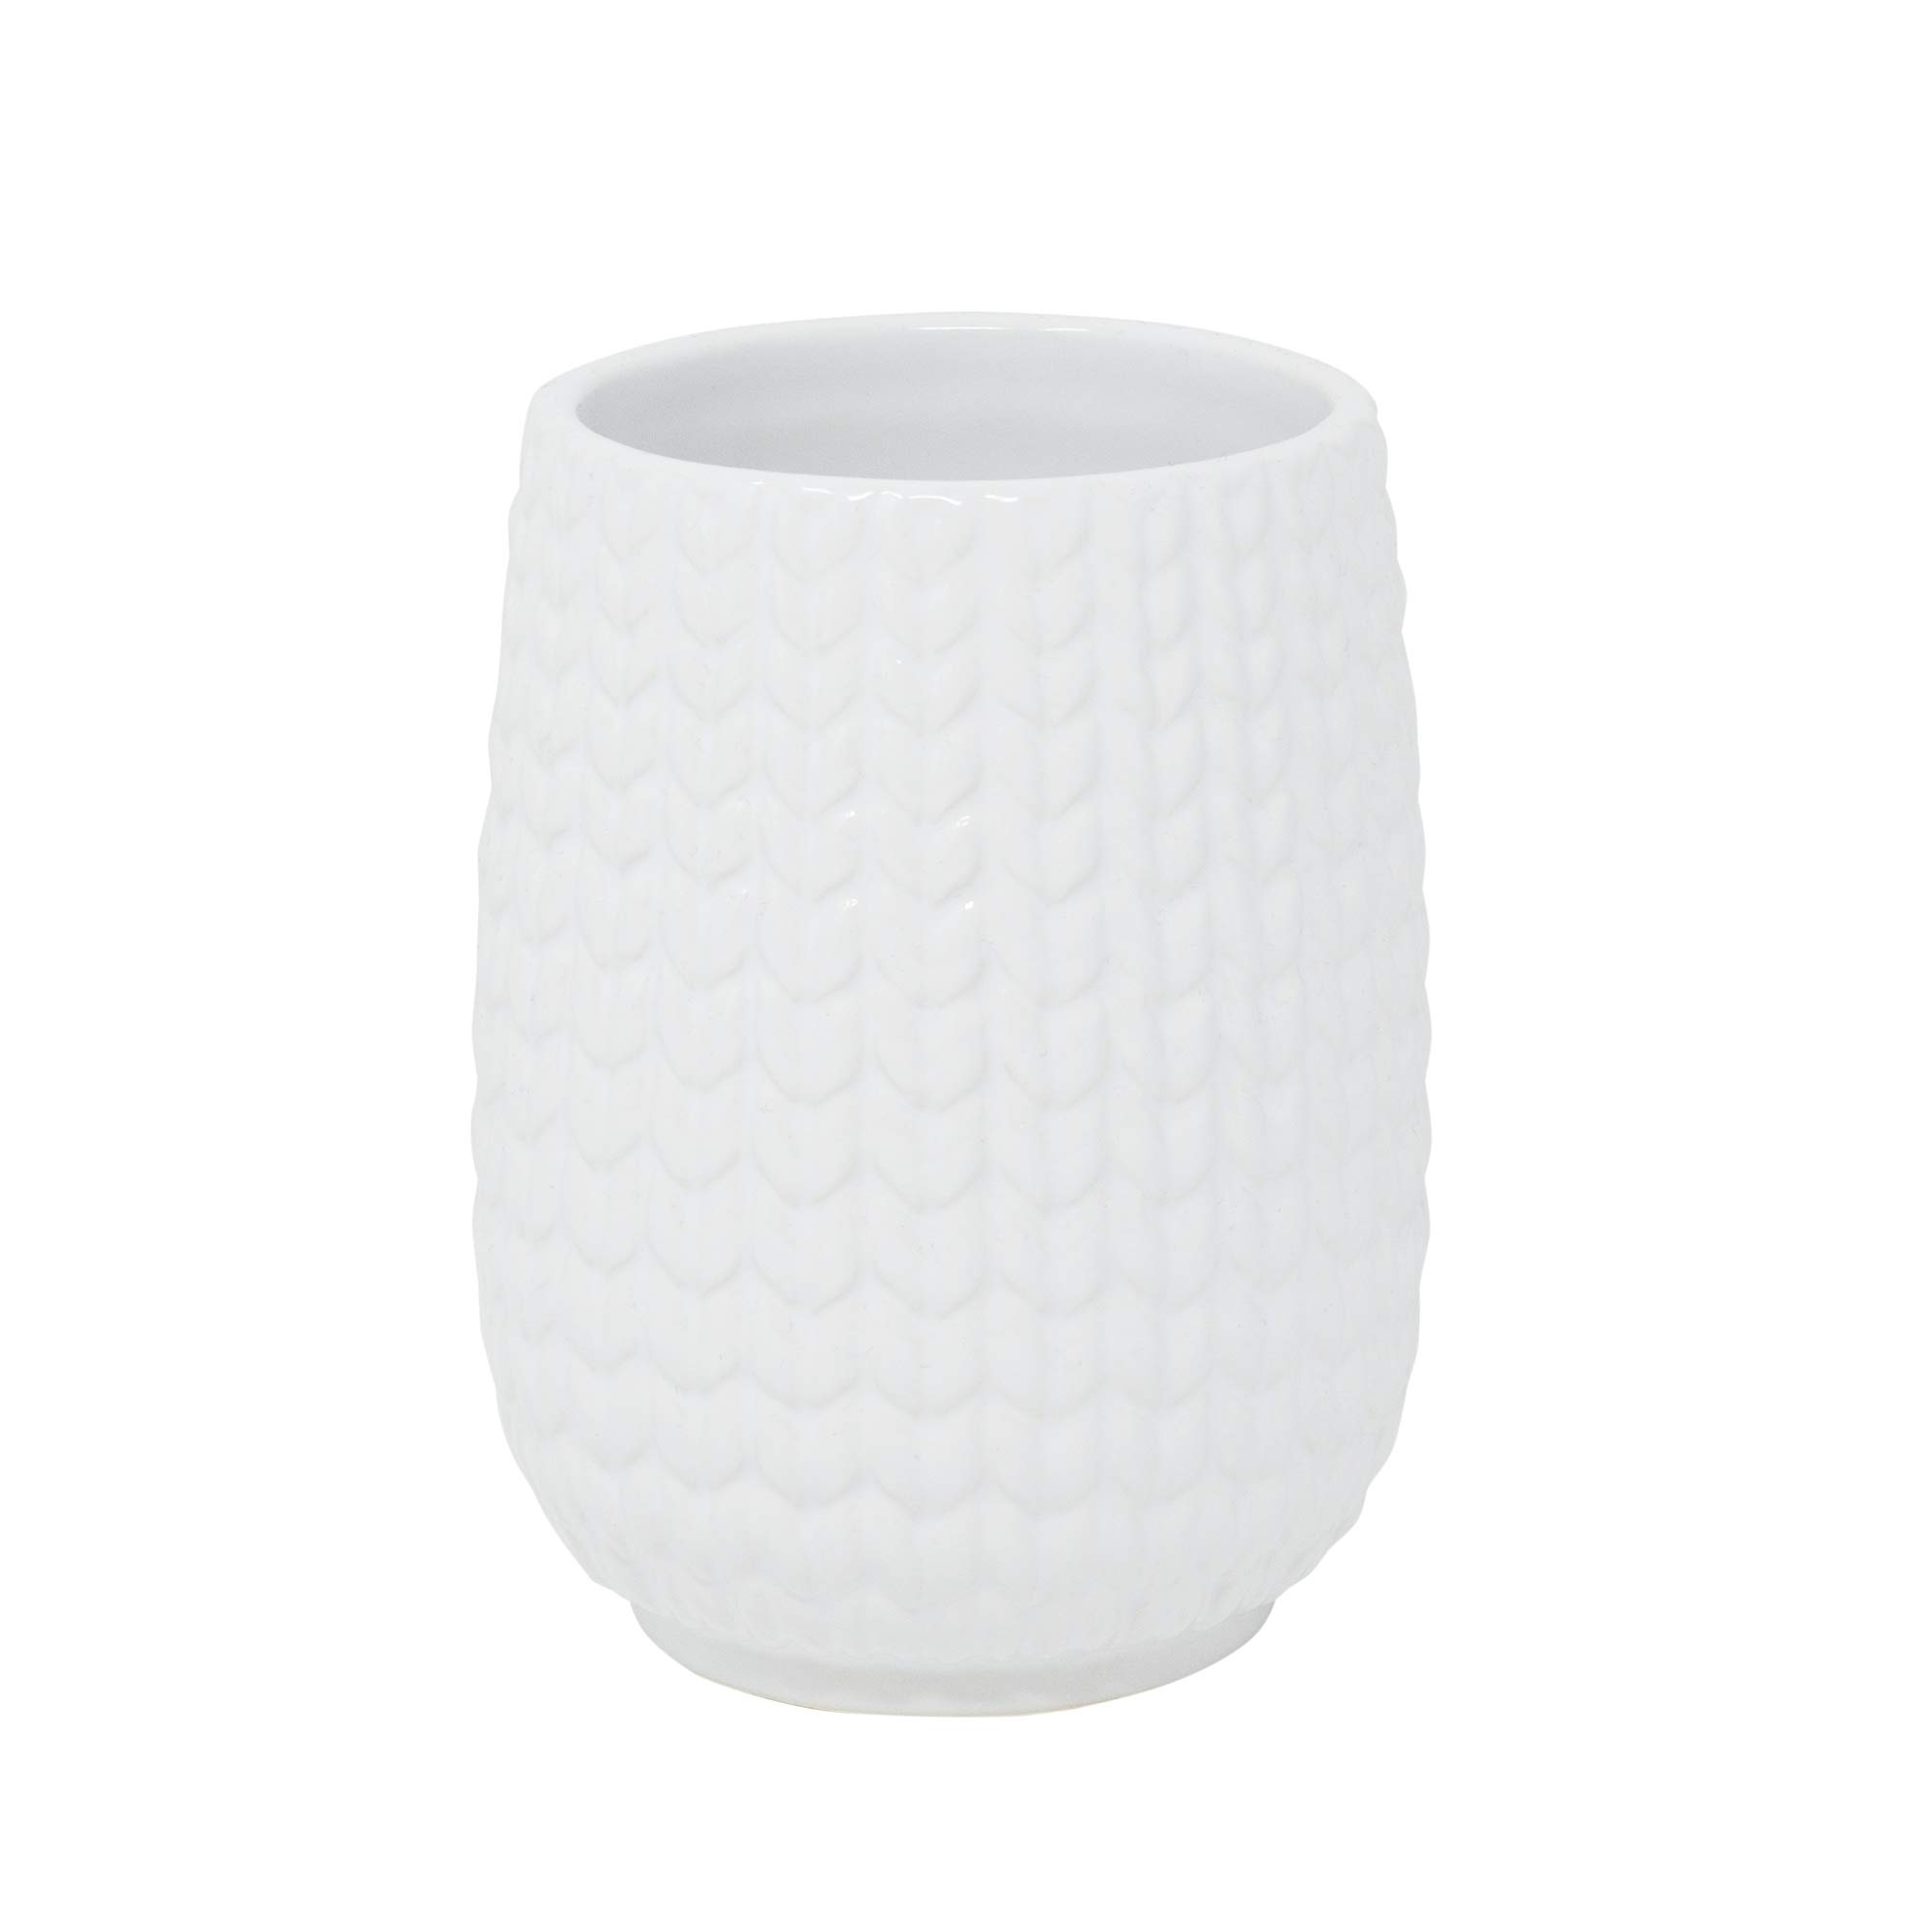 Croscill Juno Bath Tumbler, White by Croscill